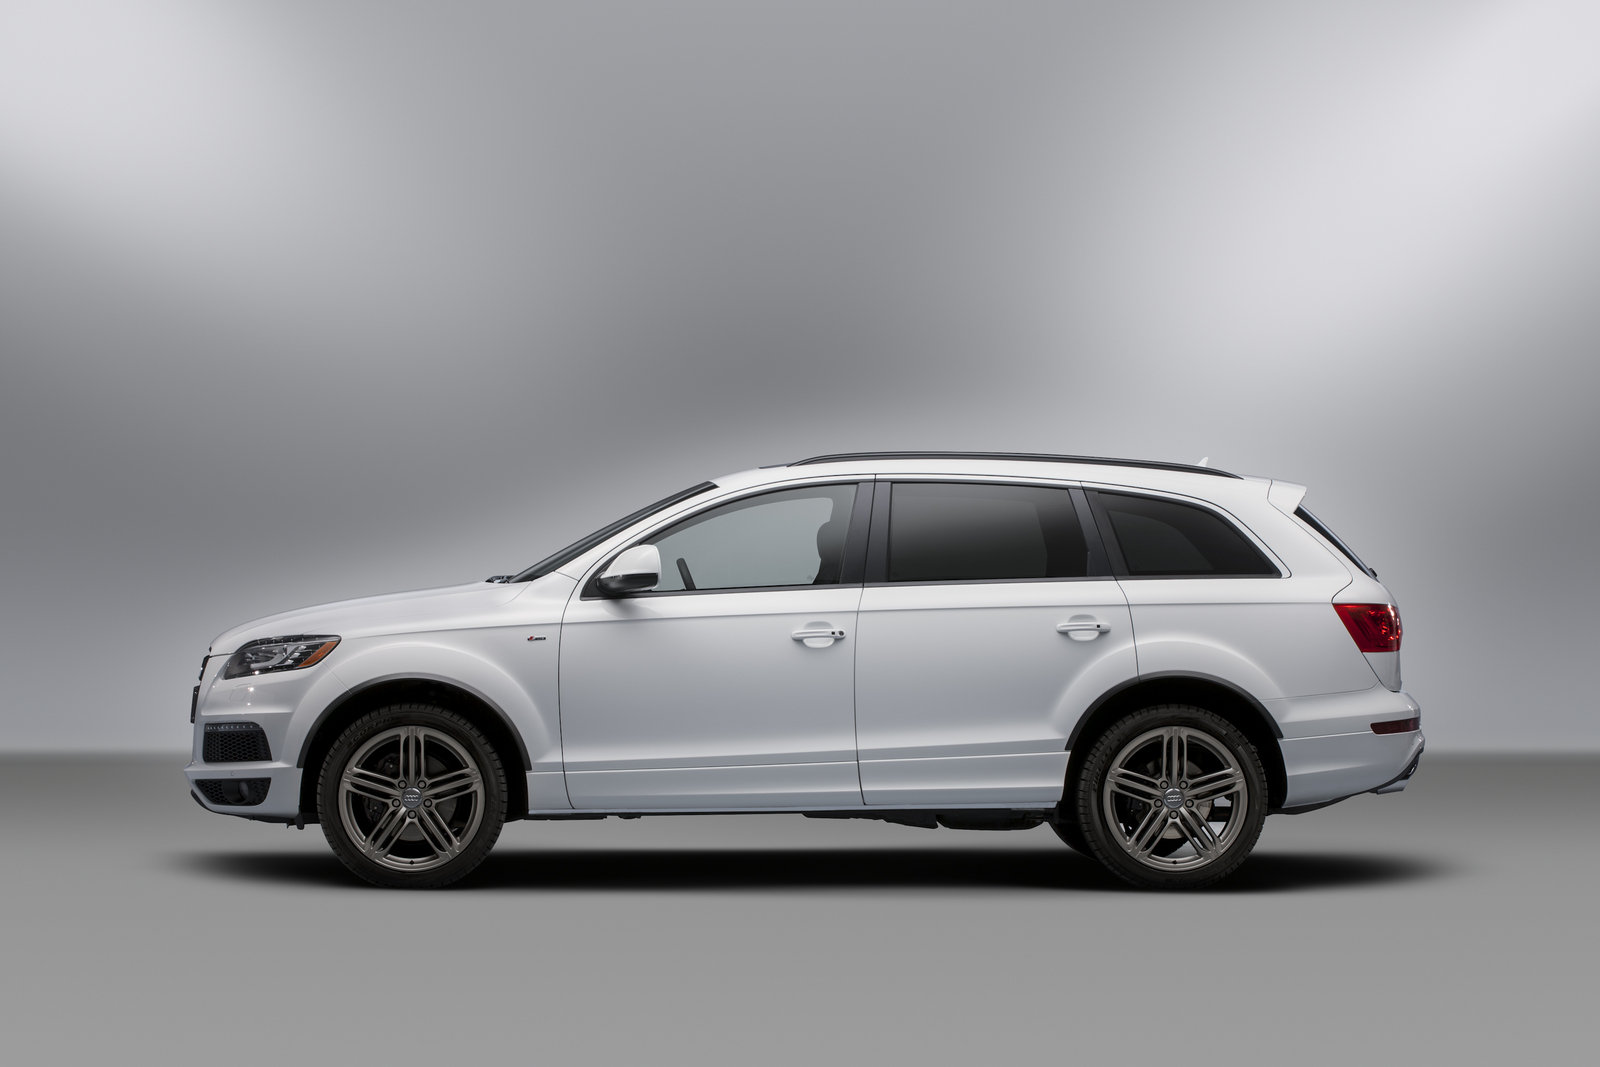 2014 audi q7 picture 512218 car review top speed. Black Bedroom Furniture Sets. Home Design Ideas